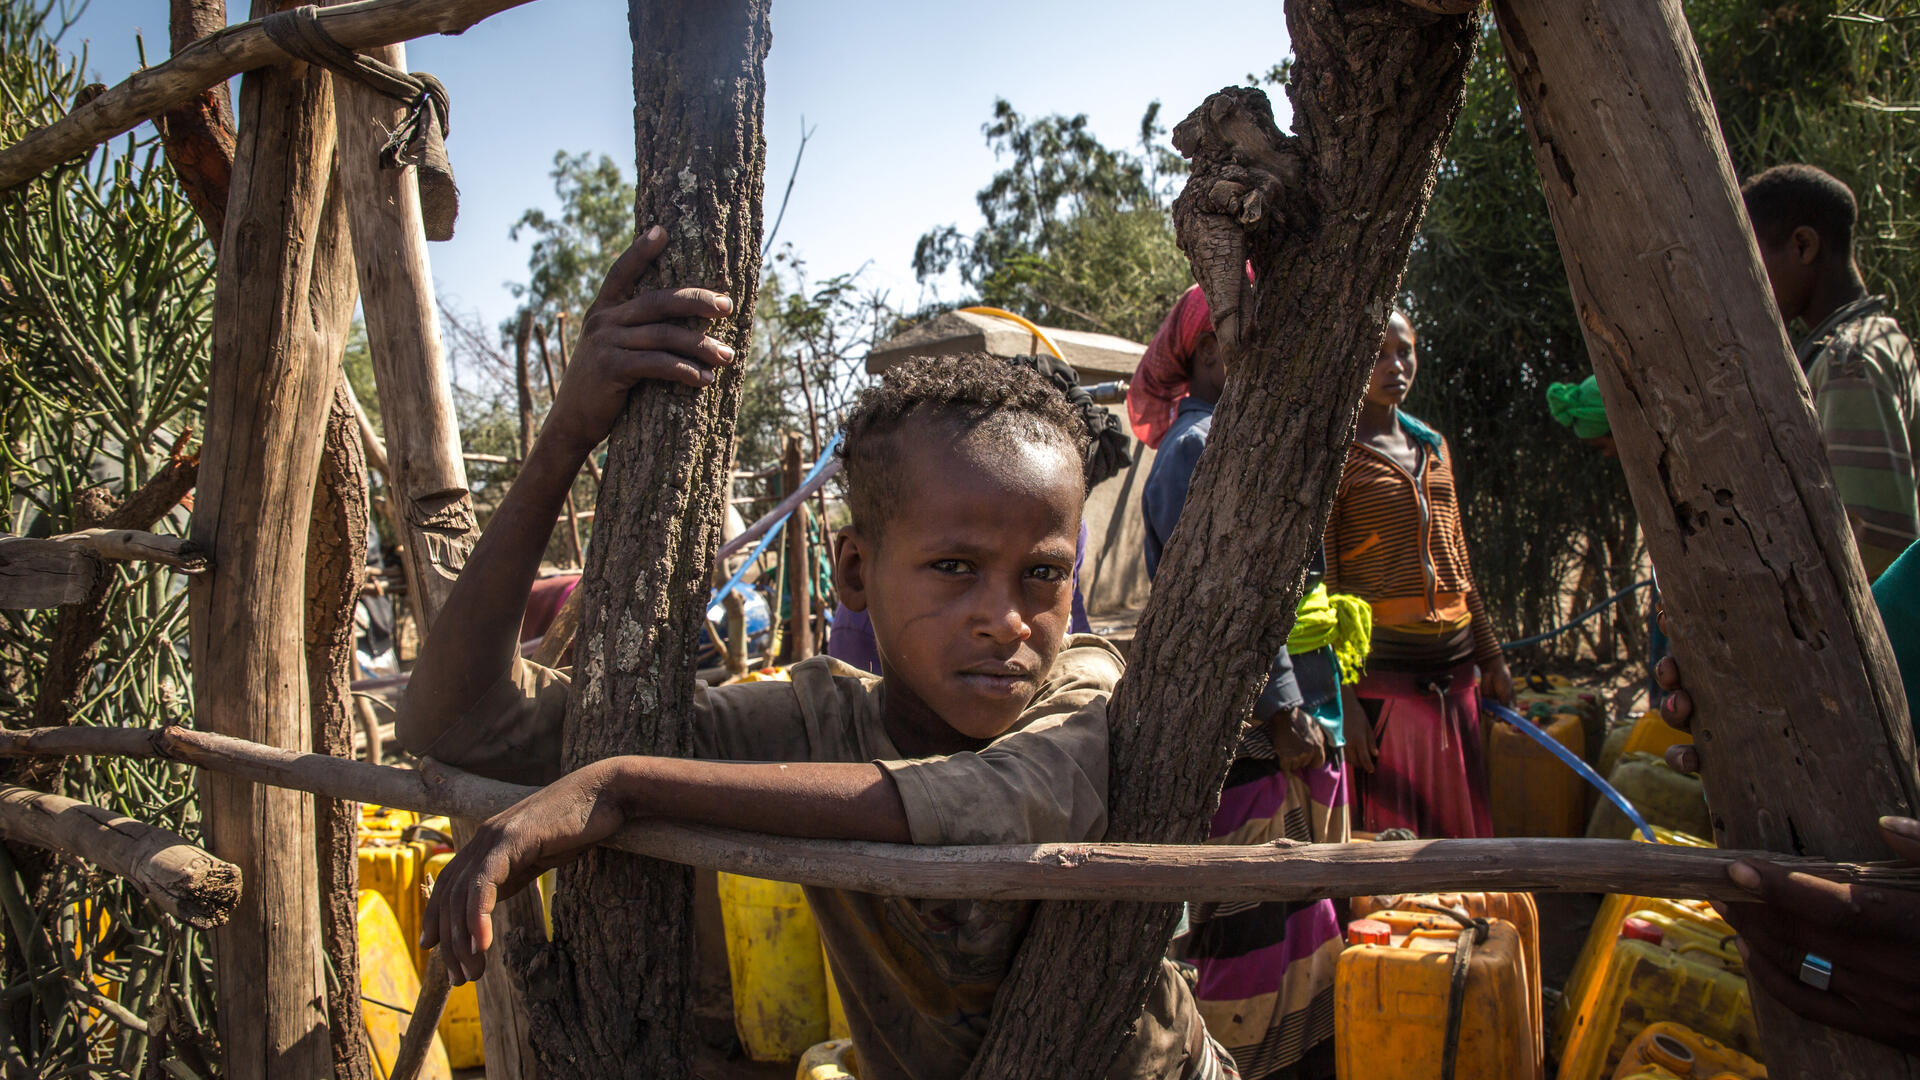 A boy leans against a fence made of branches in Ethiopia